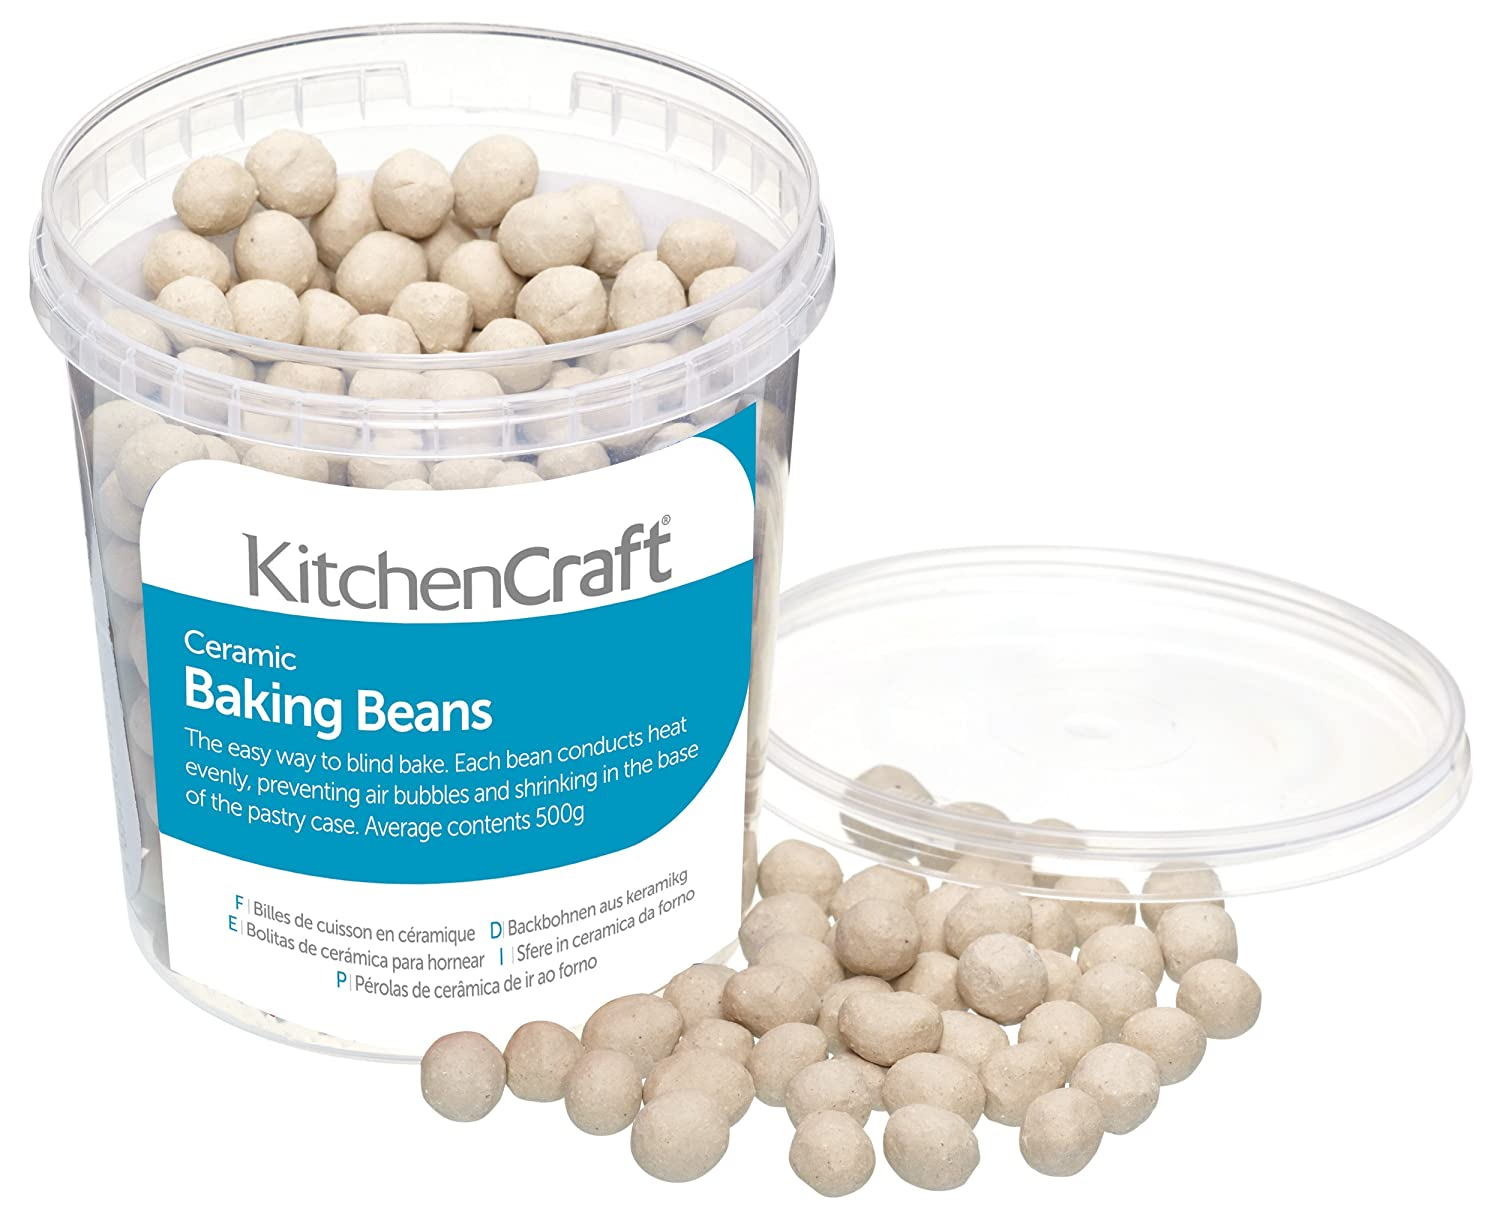 Amazon.com: Kitchencraft Ceramic Baking Beans For Pastry, 500 G (1 ...